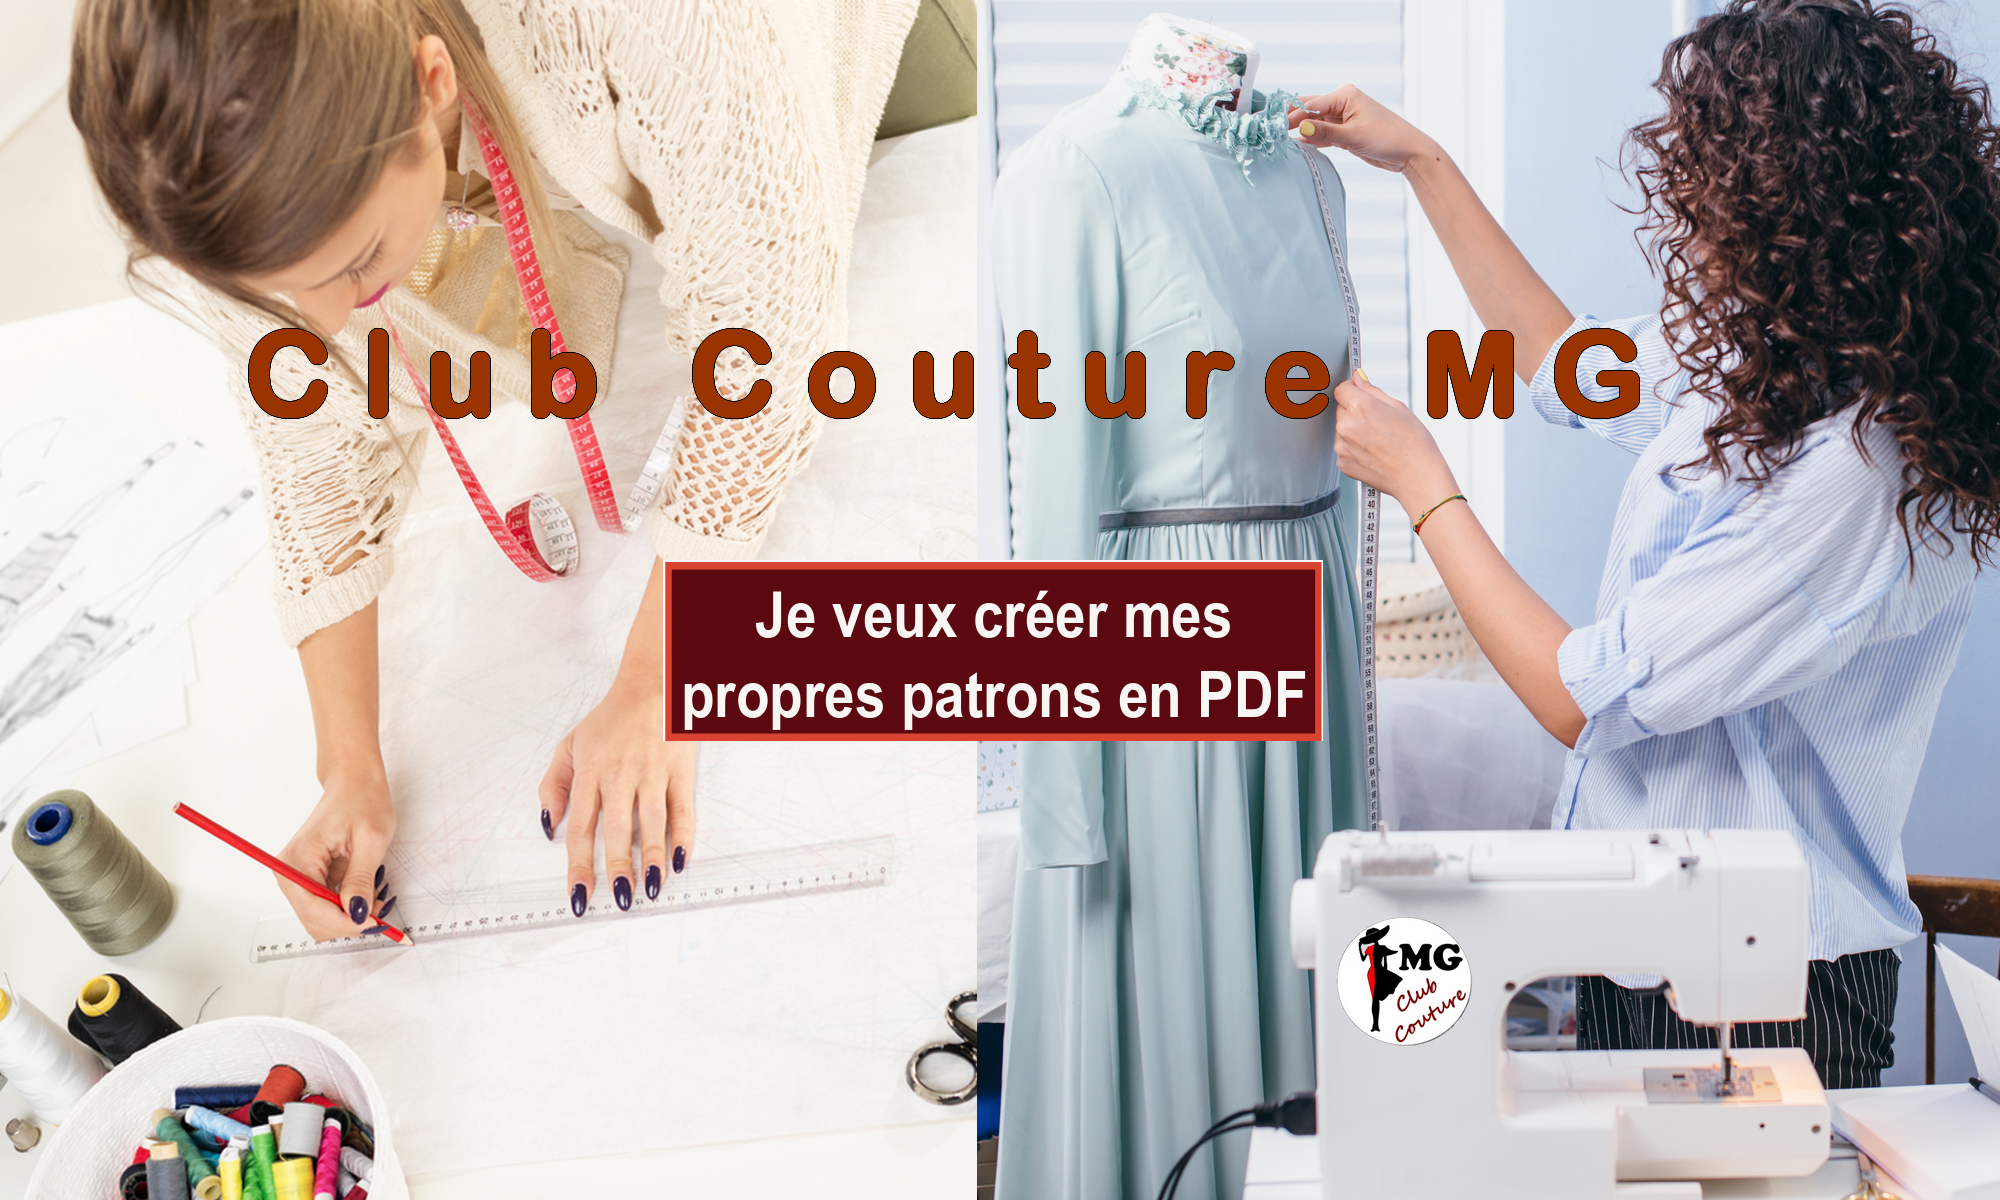 CLUB COUTURE MG